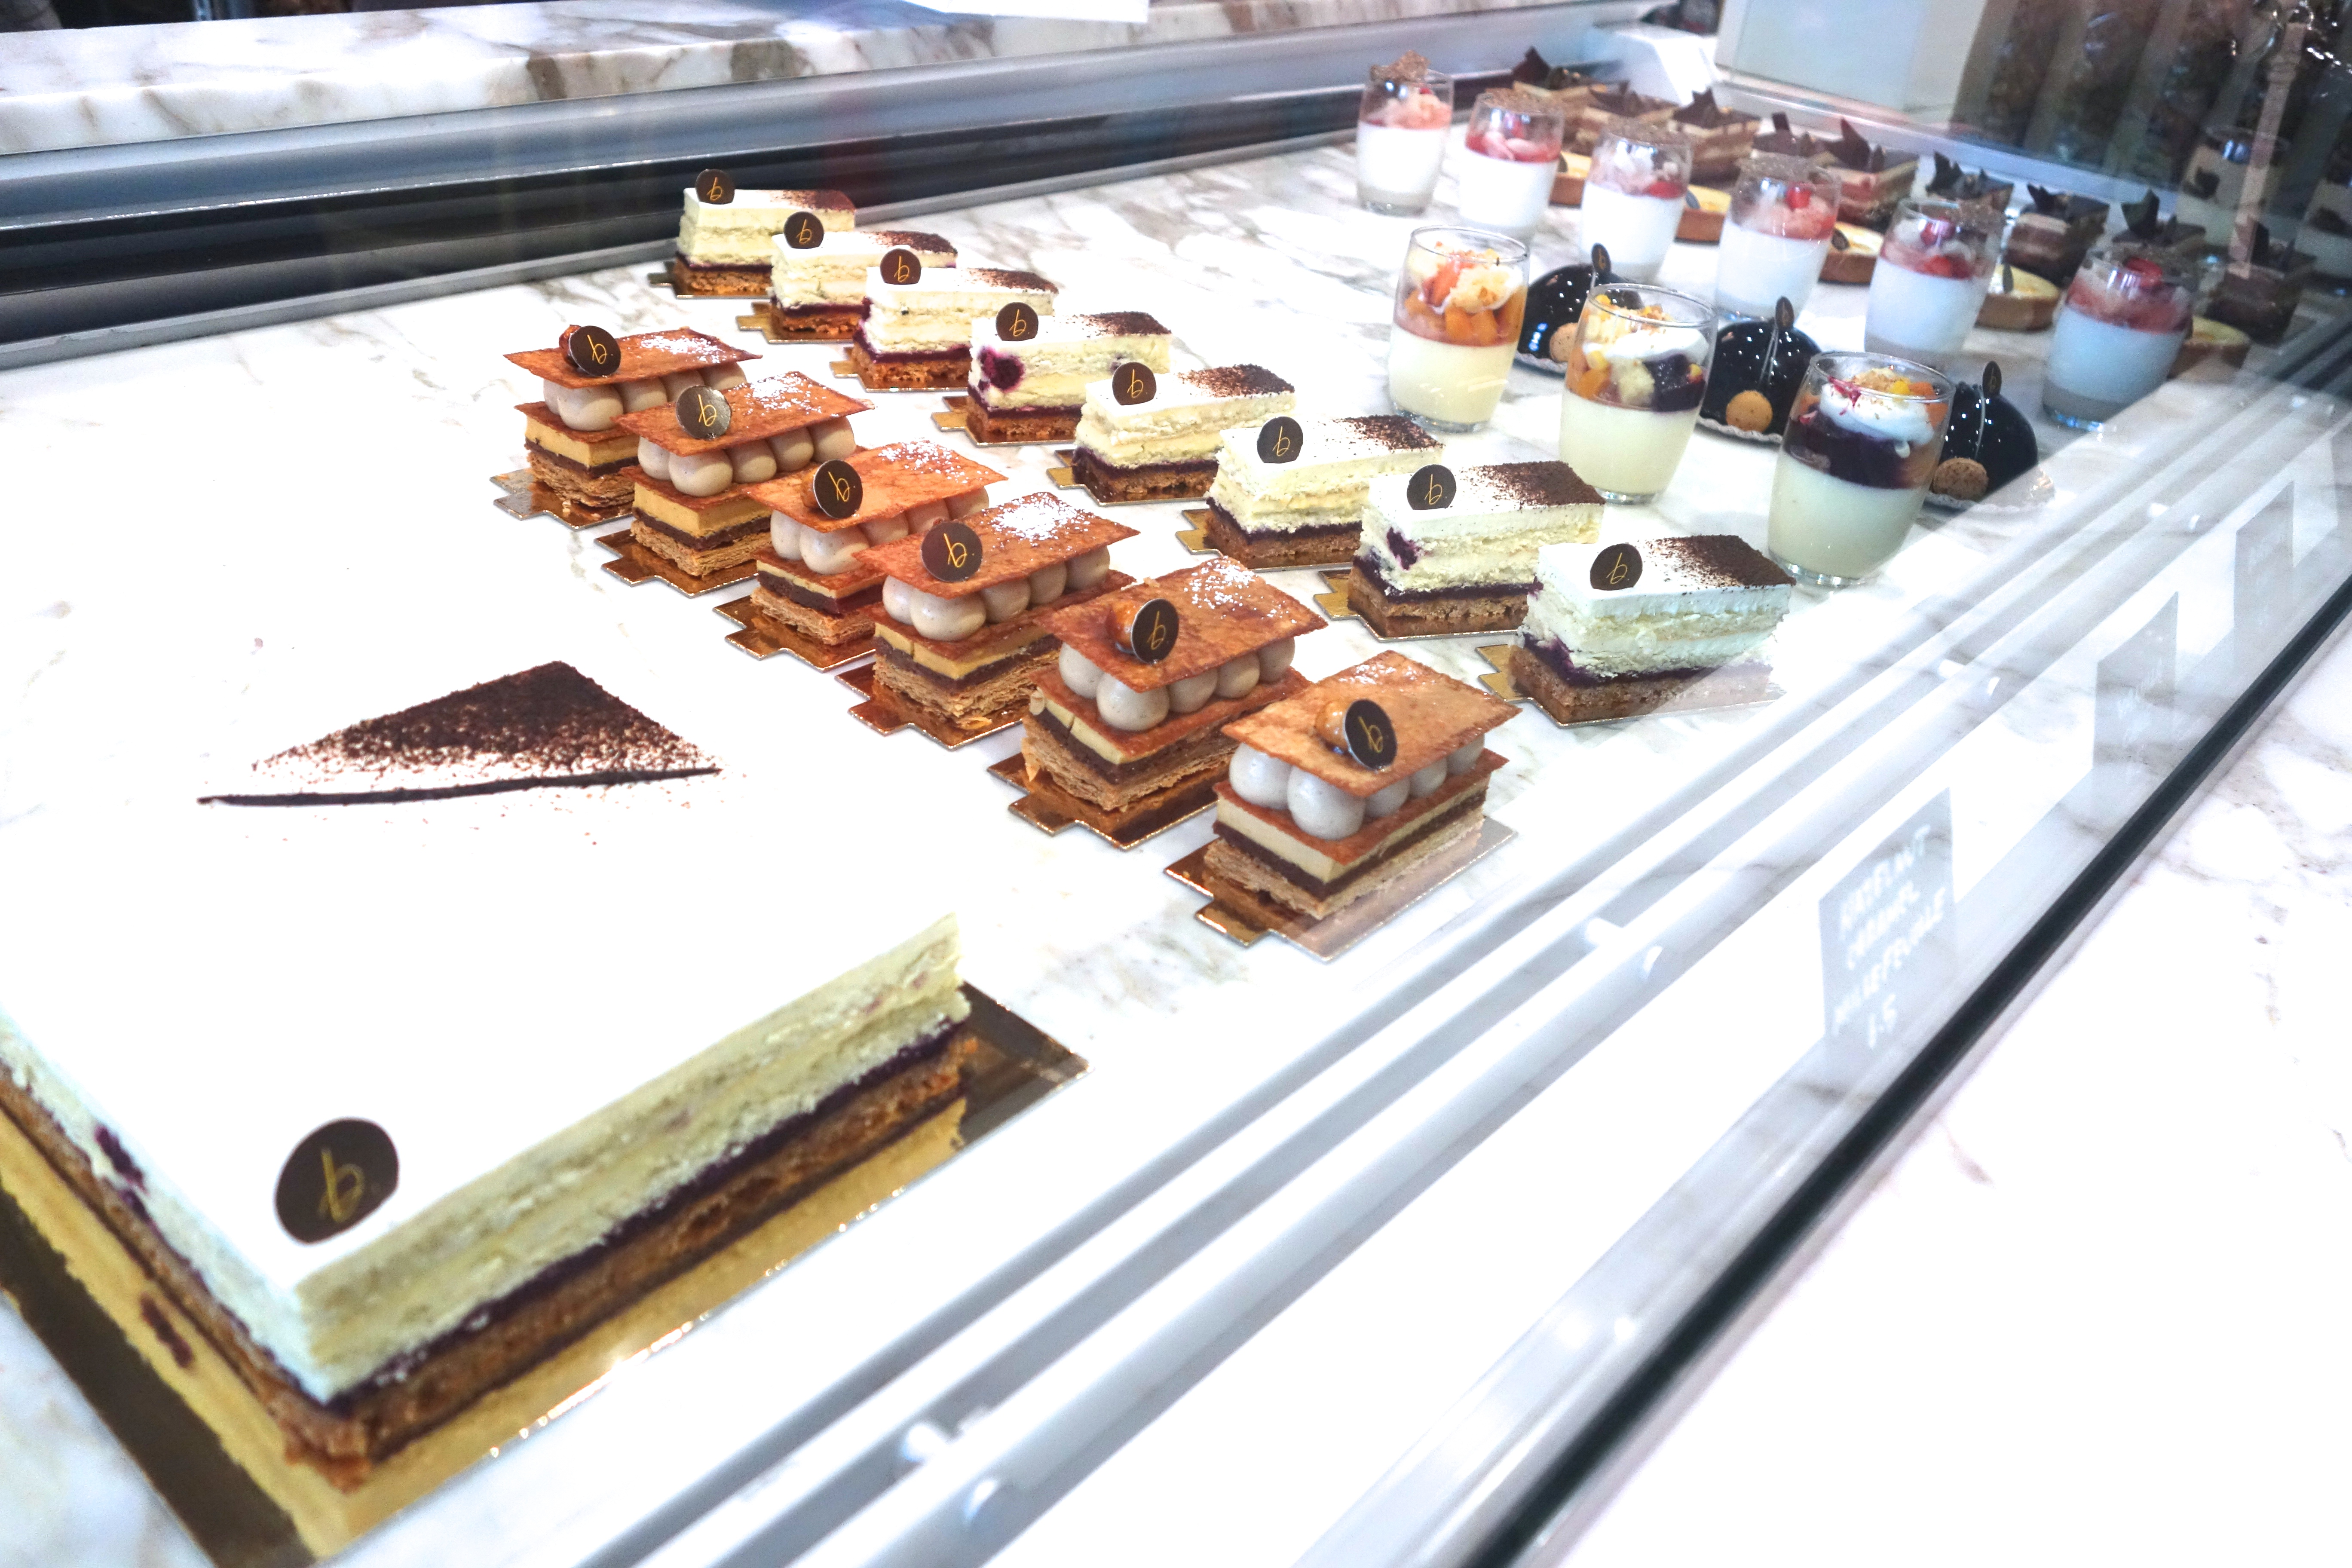 Pastries from B. Patisserie